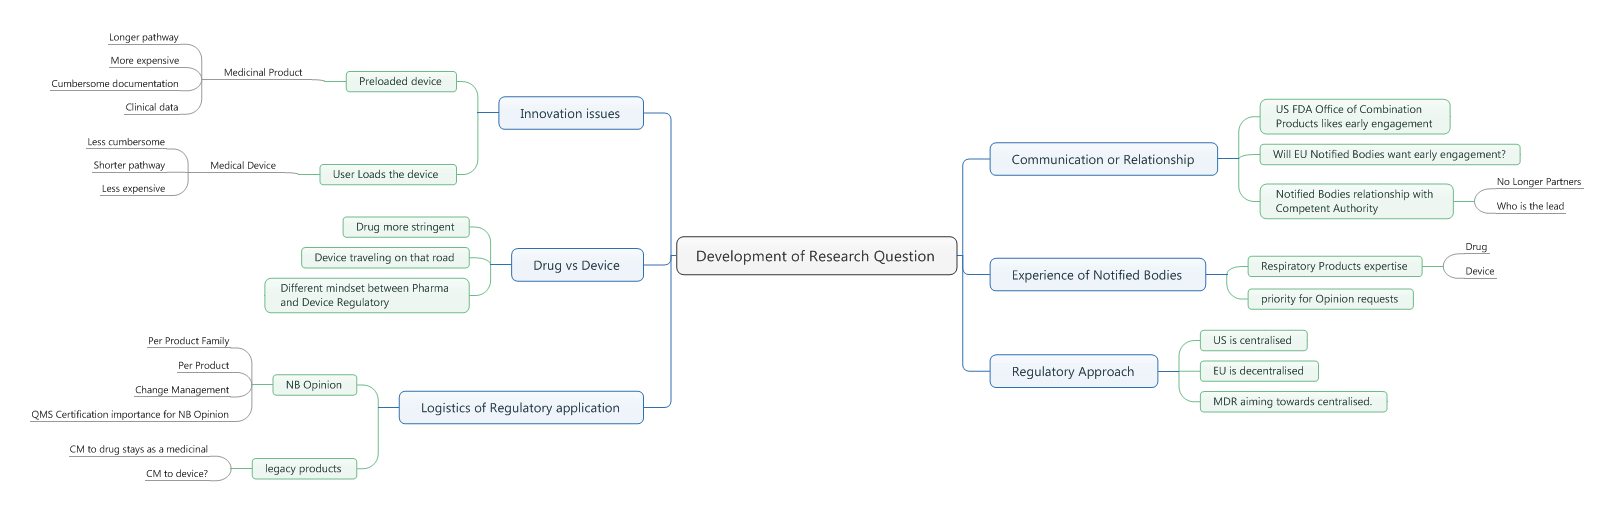 Identifying my Research Design